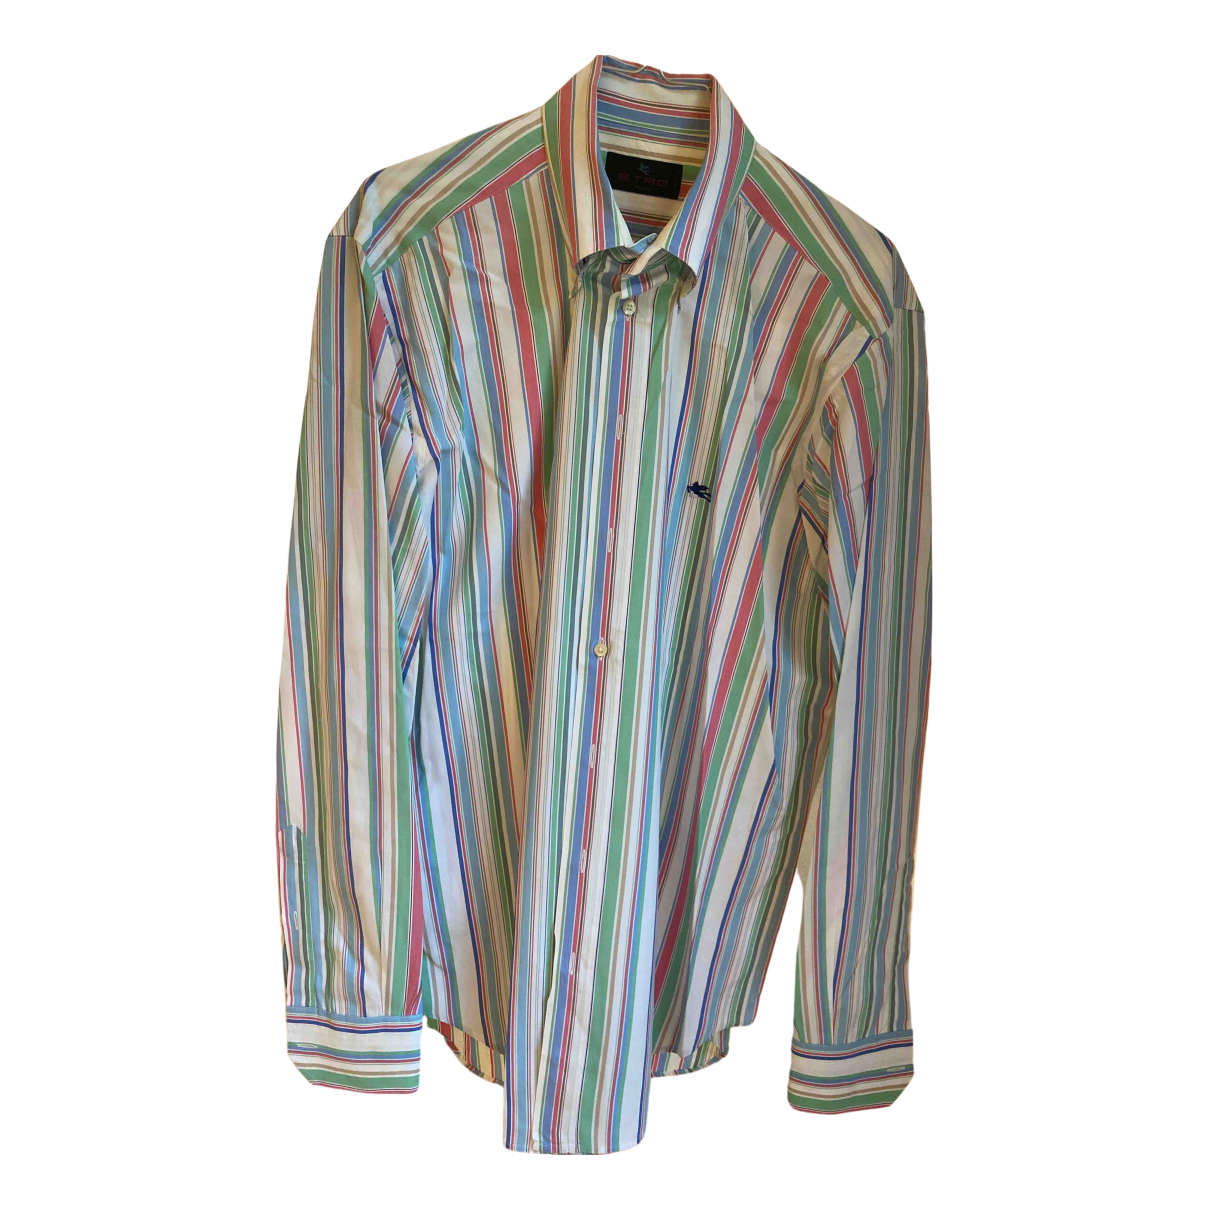 Etro \N Multicolour Cotton Shirts for Men 42 EU (tour de cou / collar)